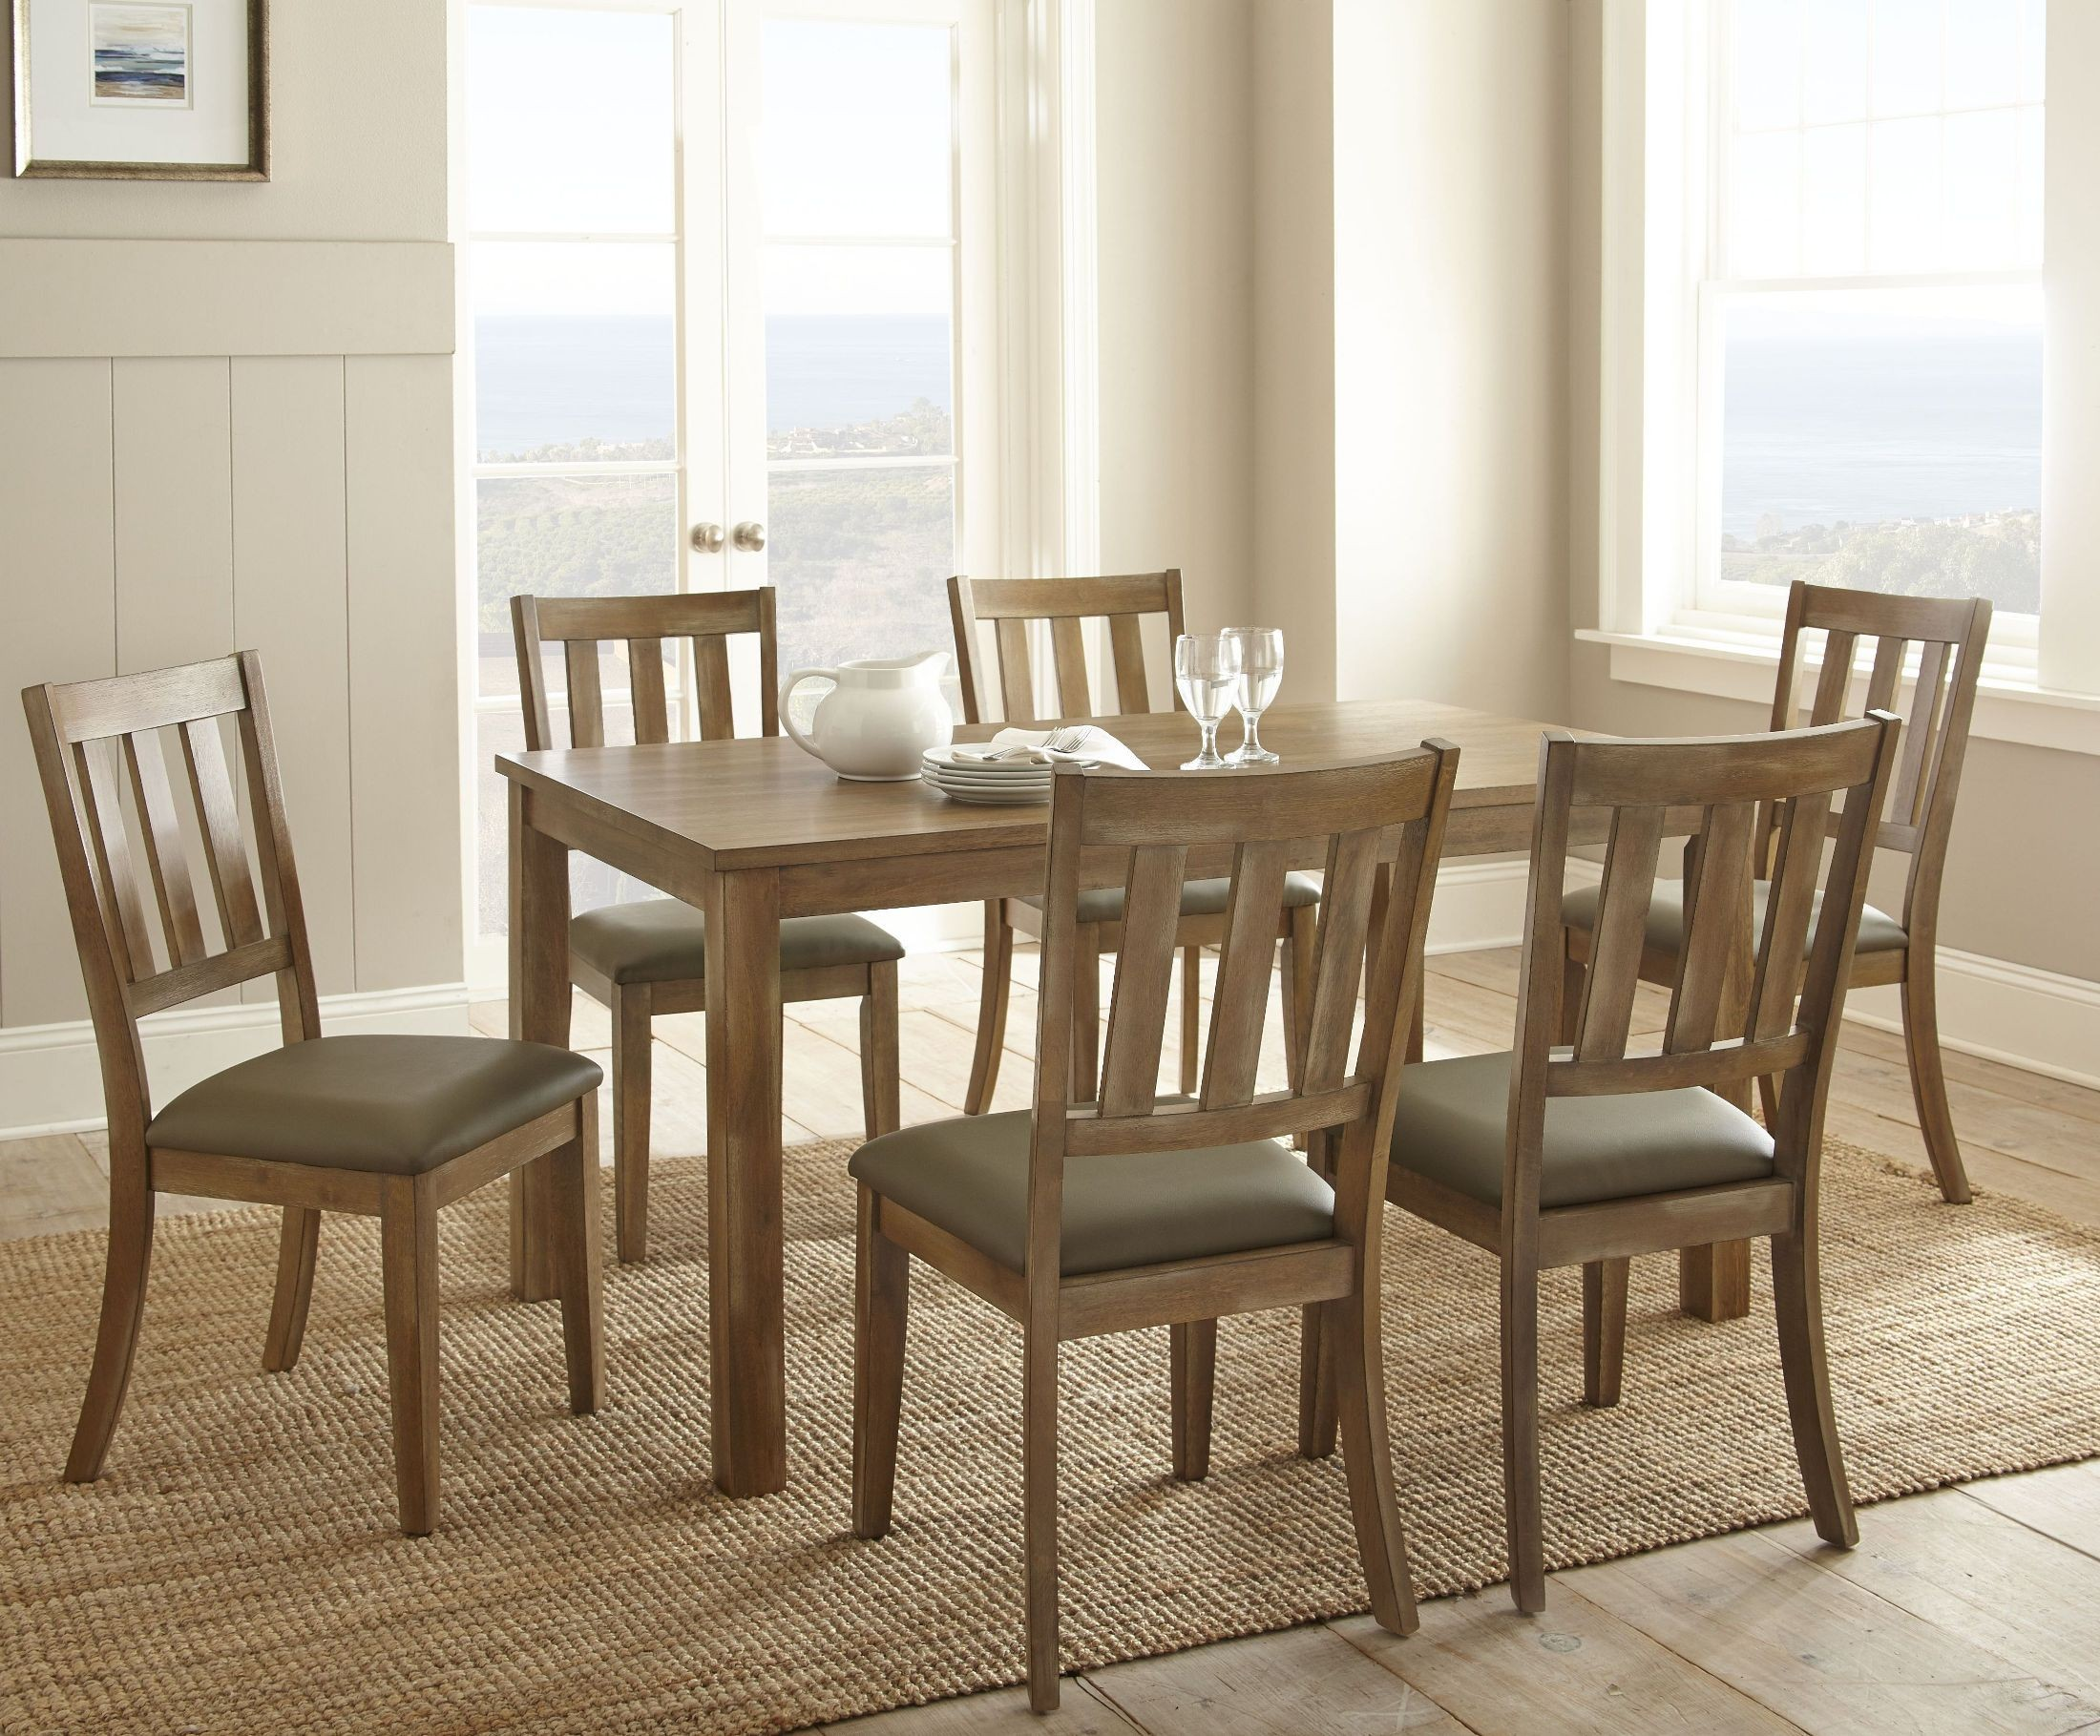 cheap pine dining chairs electric reclining for elderly ander washed rectangular room set ad450t